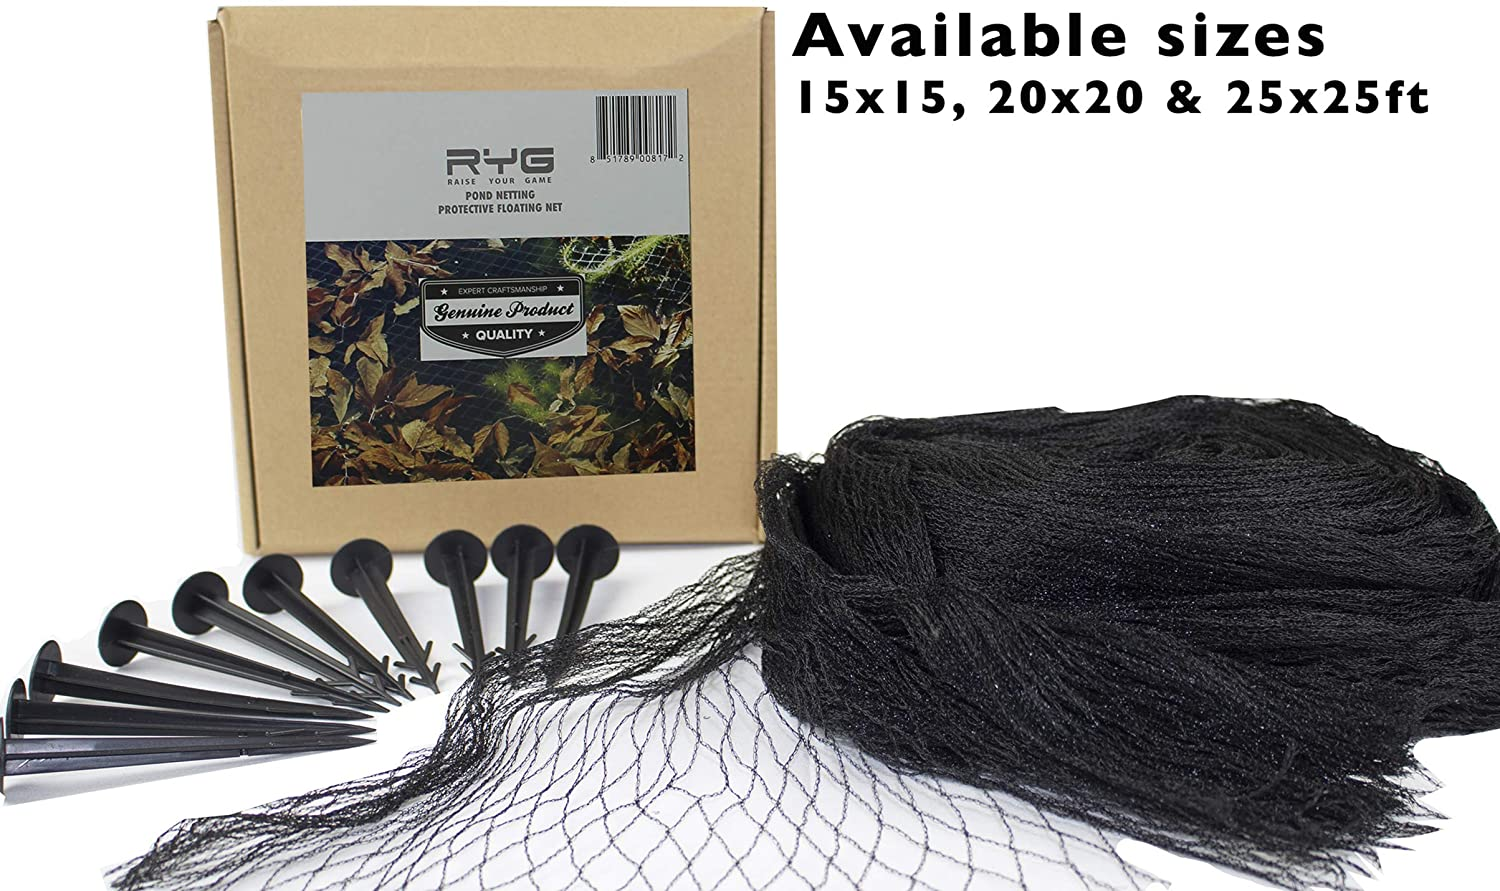 Raise Your Game Pond Netting 20ft x 20ft